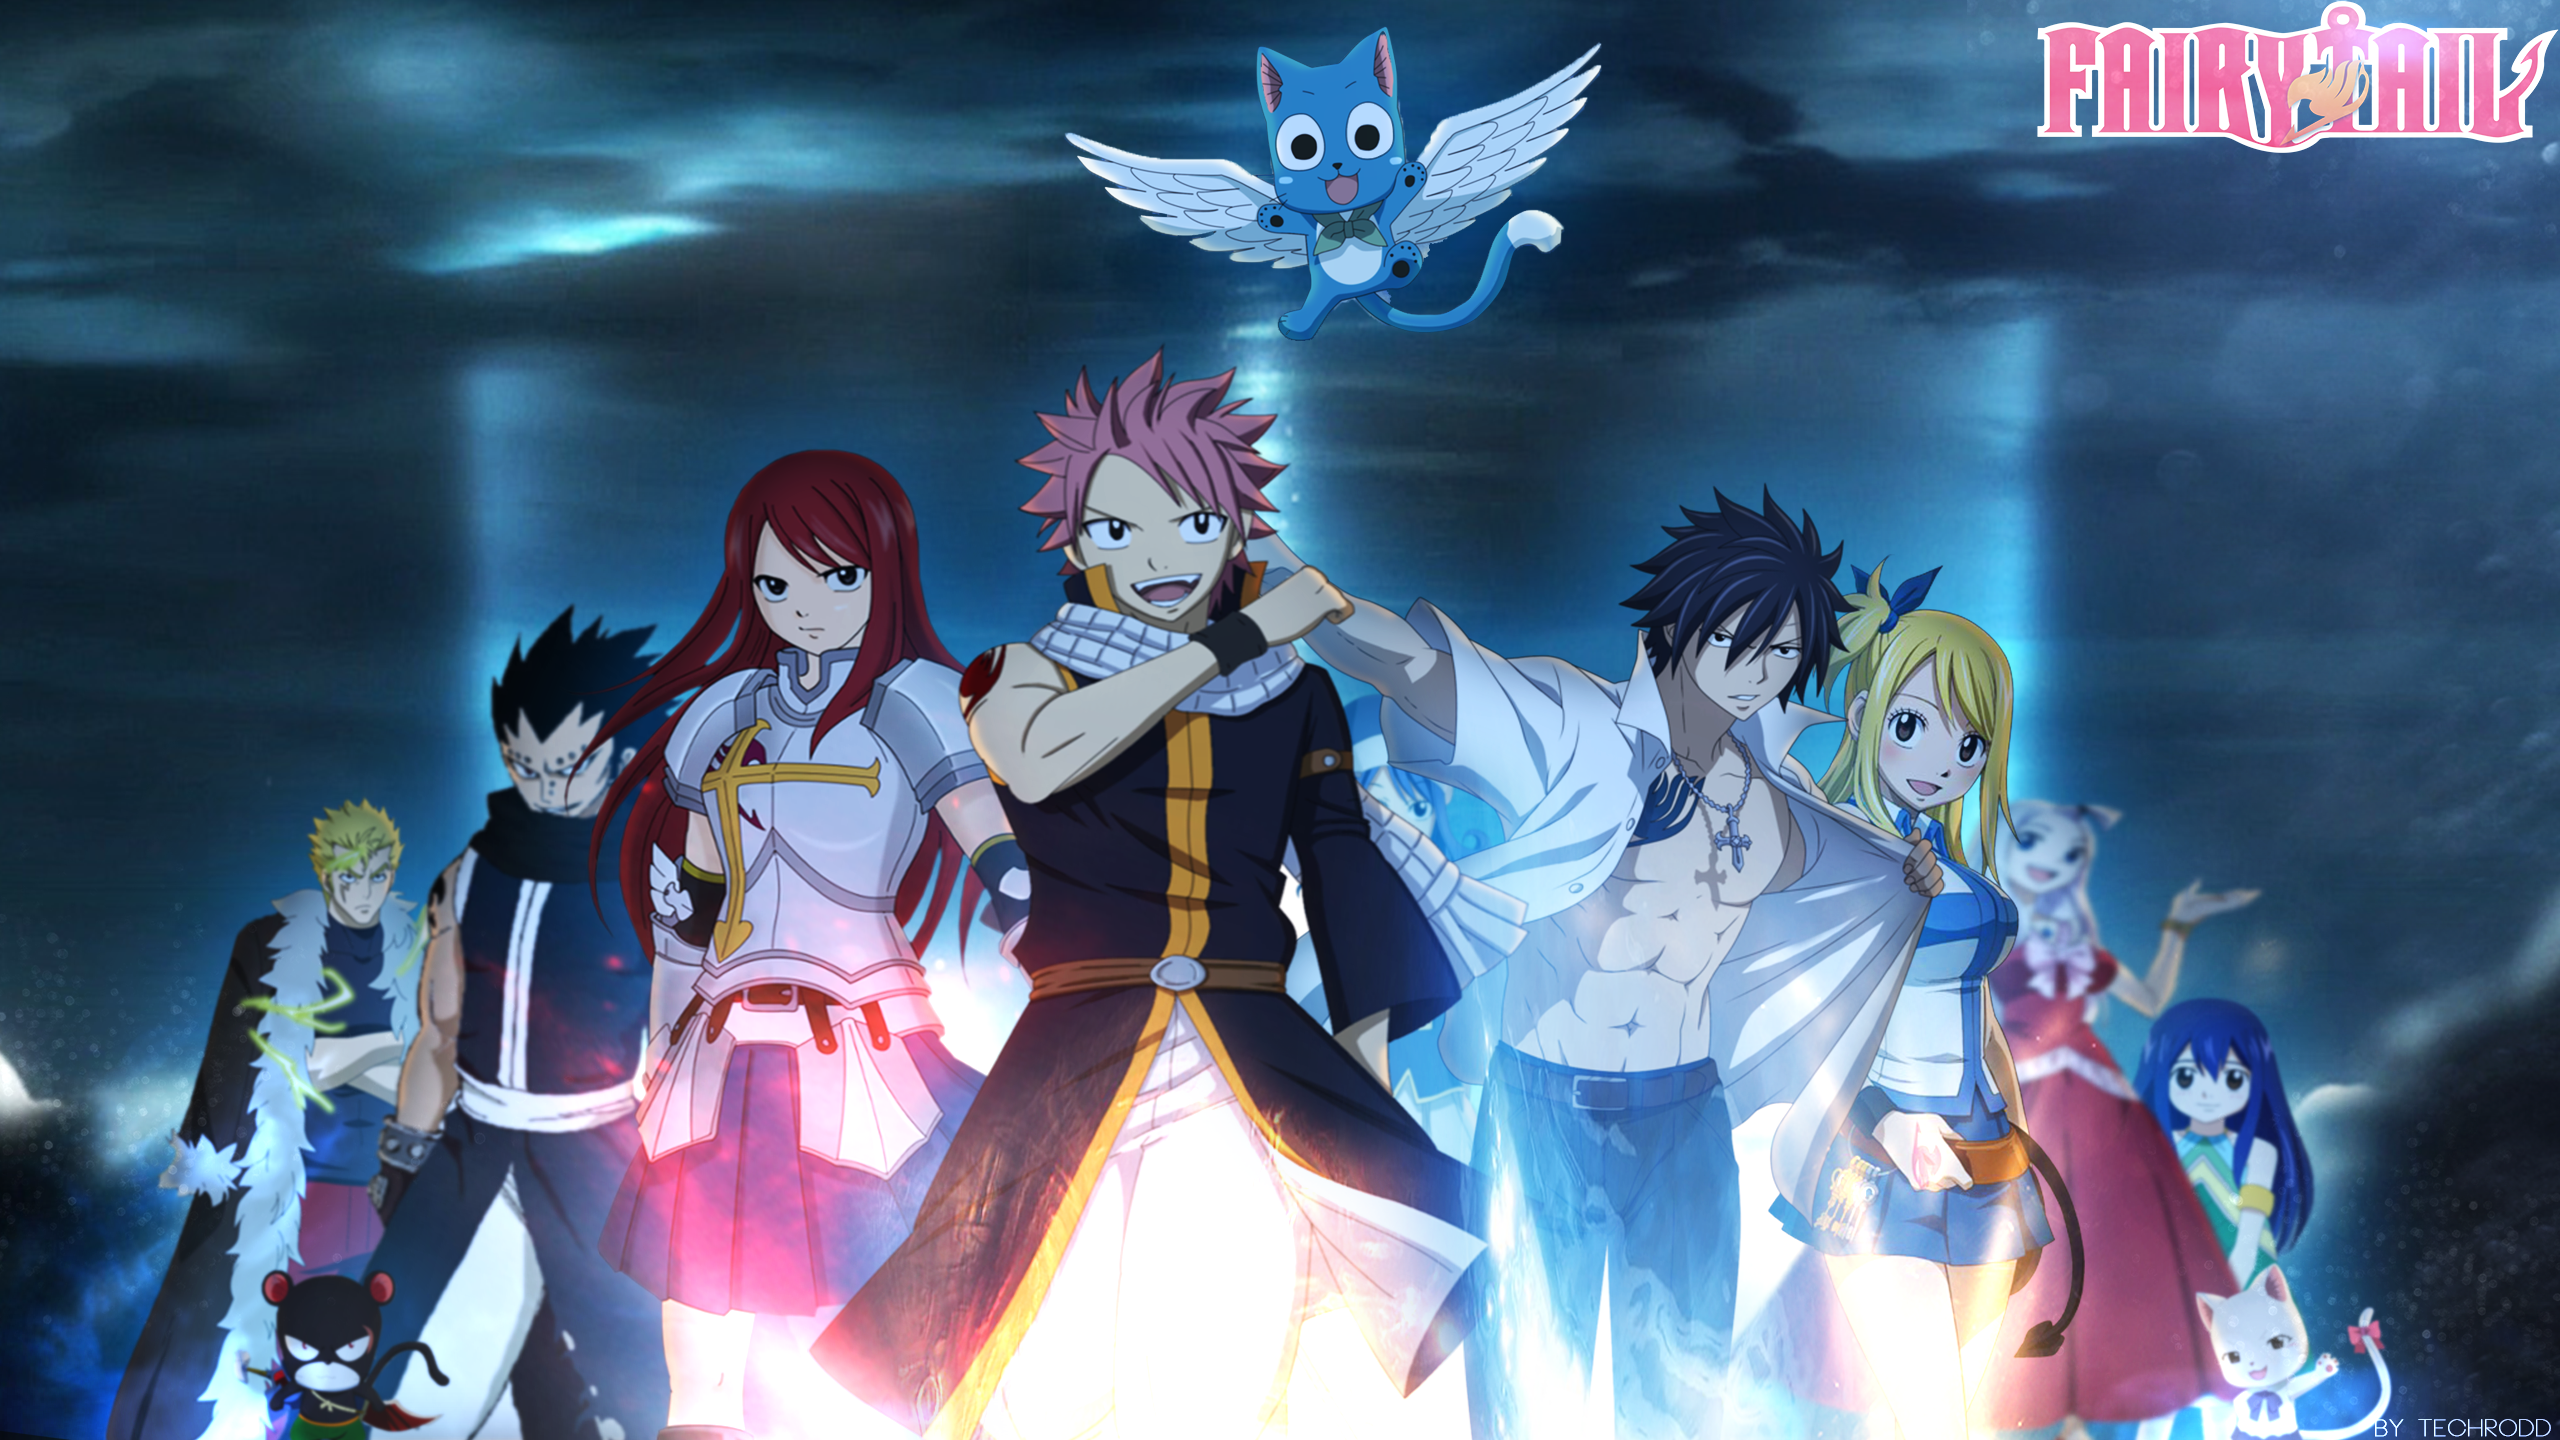 Fairy Tail Wallpaper Windows 87 5934 Wallpaper Cool Walldiskpaper 2560x1440